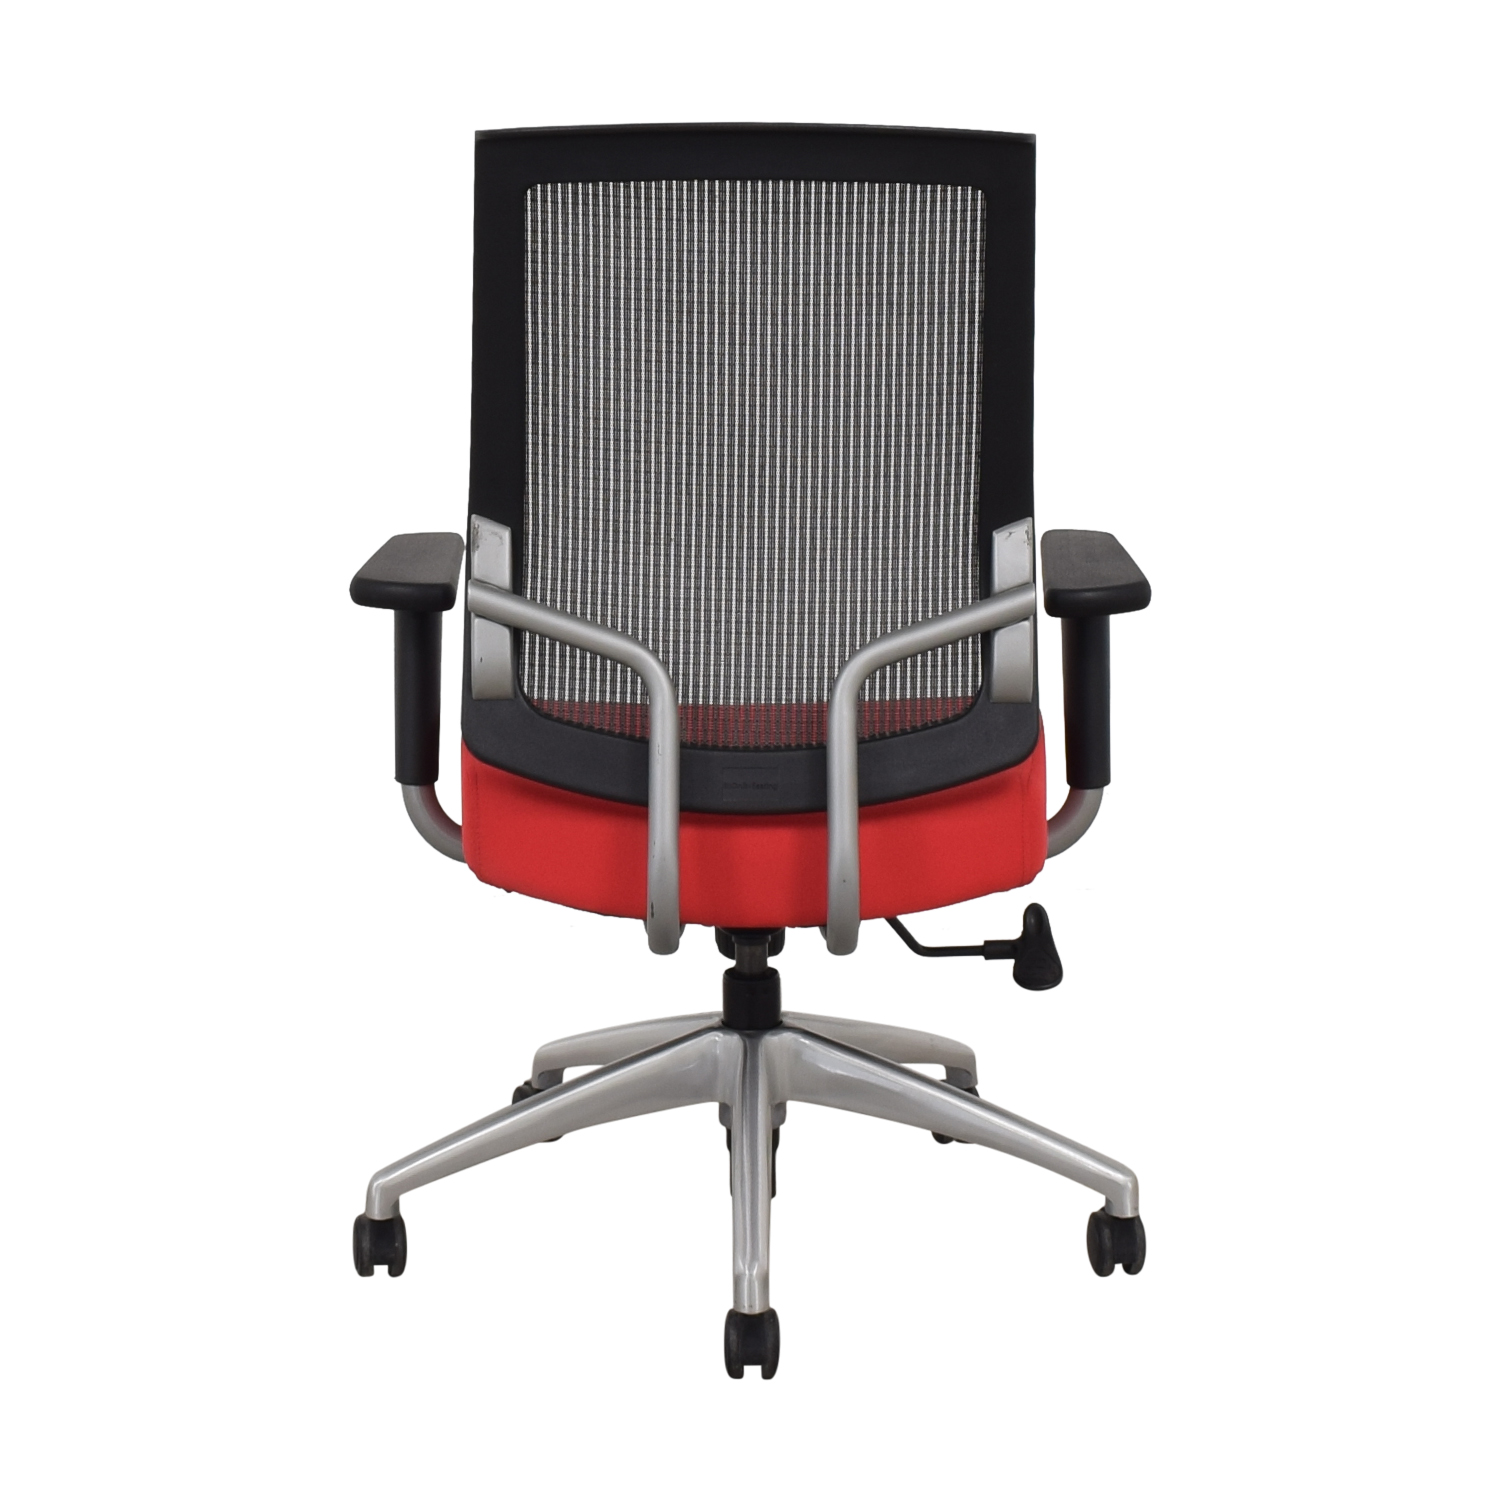 SitOnIt SitOnIt Focus High Back Office Chair for sale